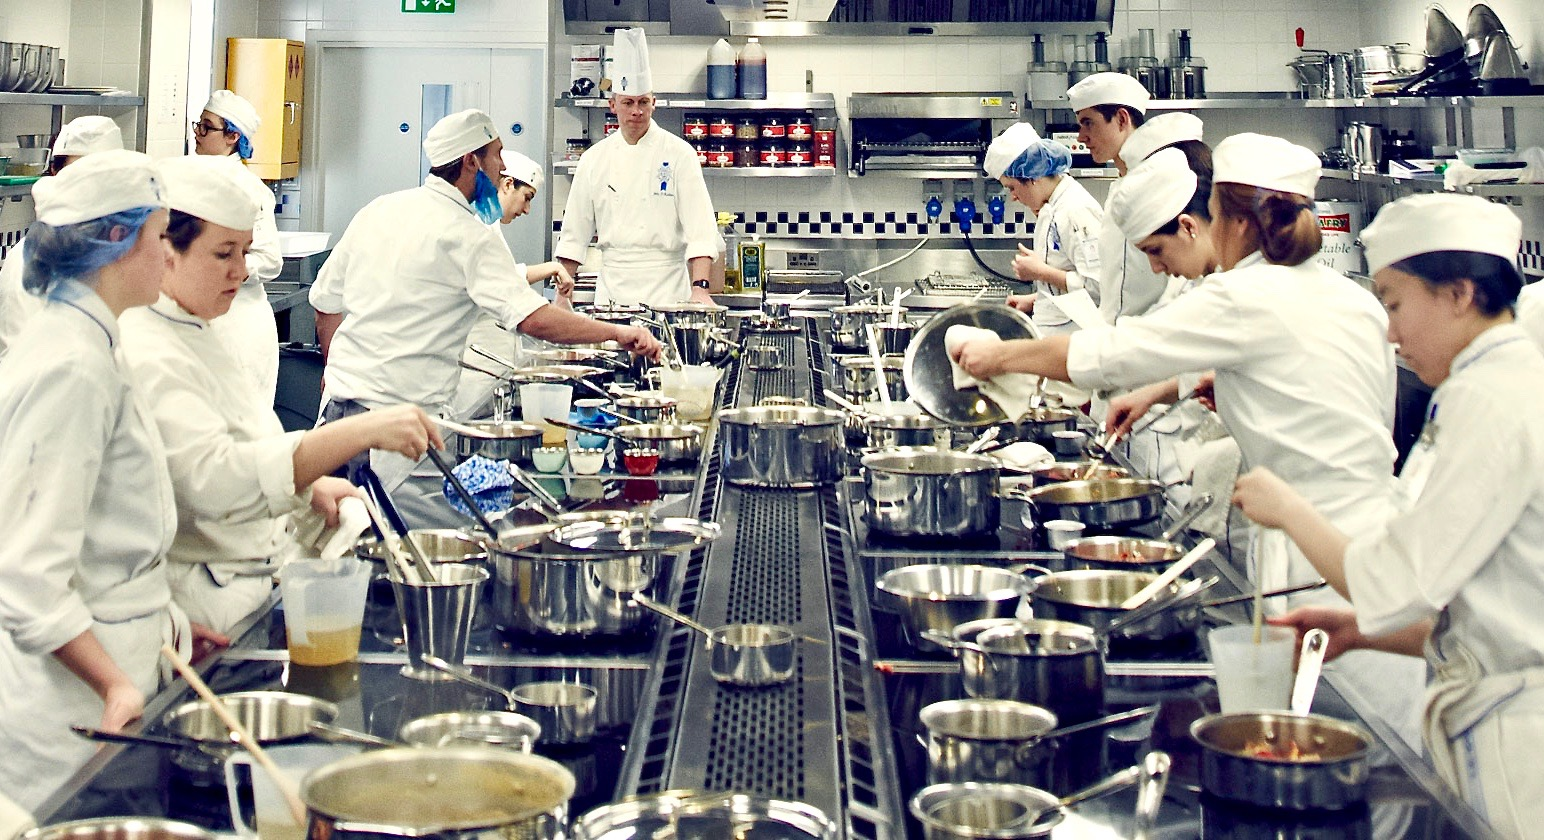 Cuisine at Le Cordon Bleu College of Culinary Arts in London